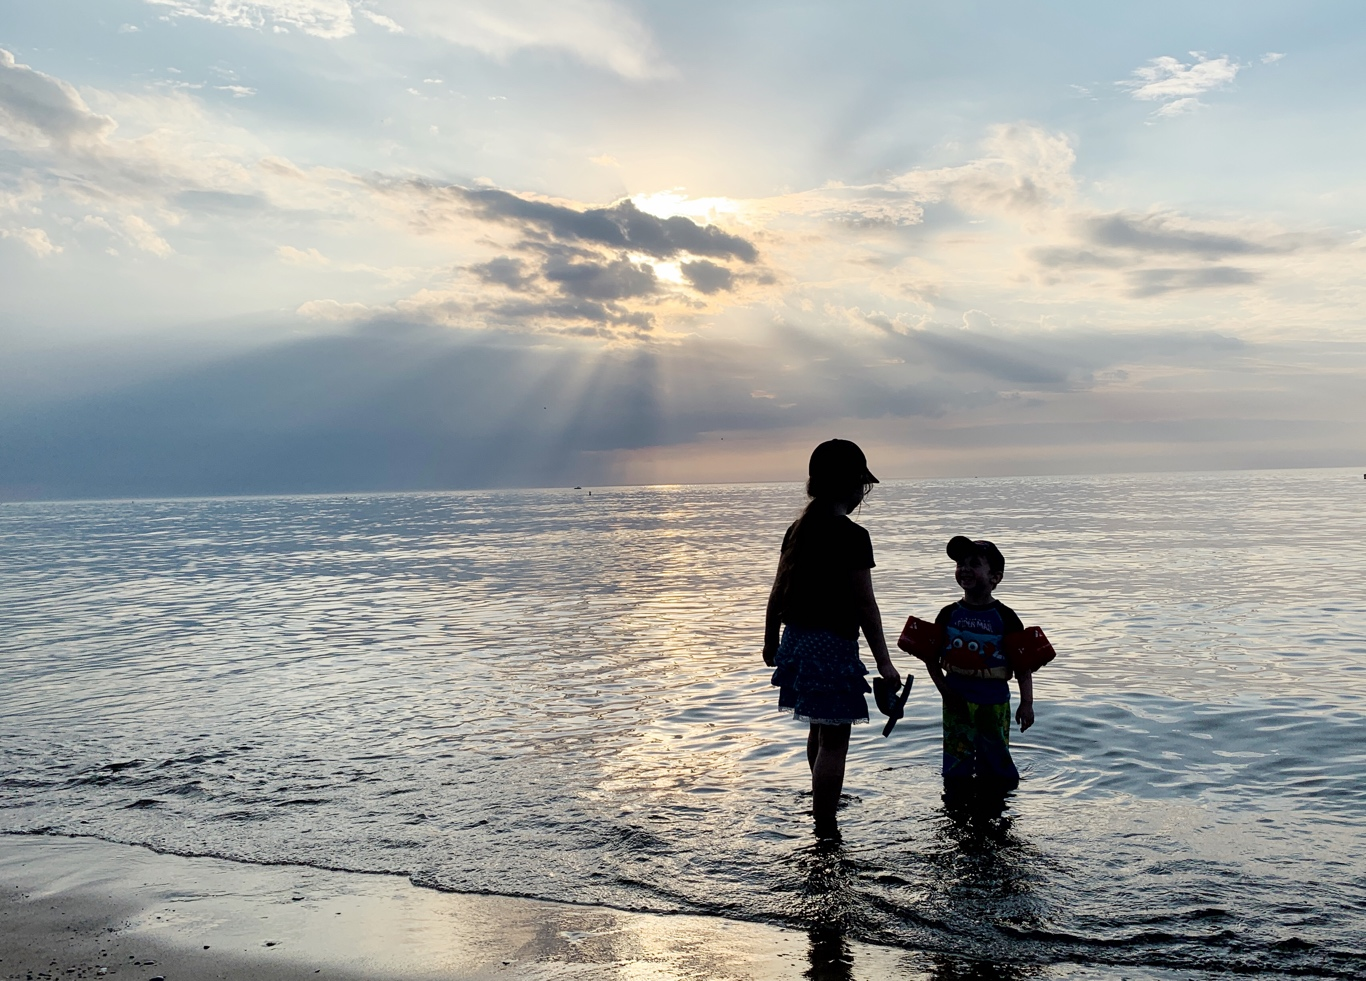 Cool off in Lake Michigan after hiking with kids in Indiana Dunes National Park